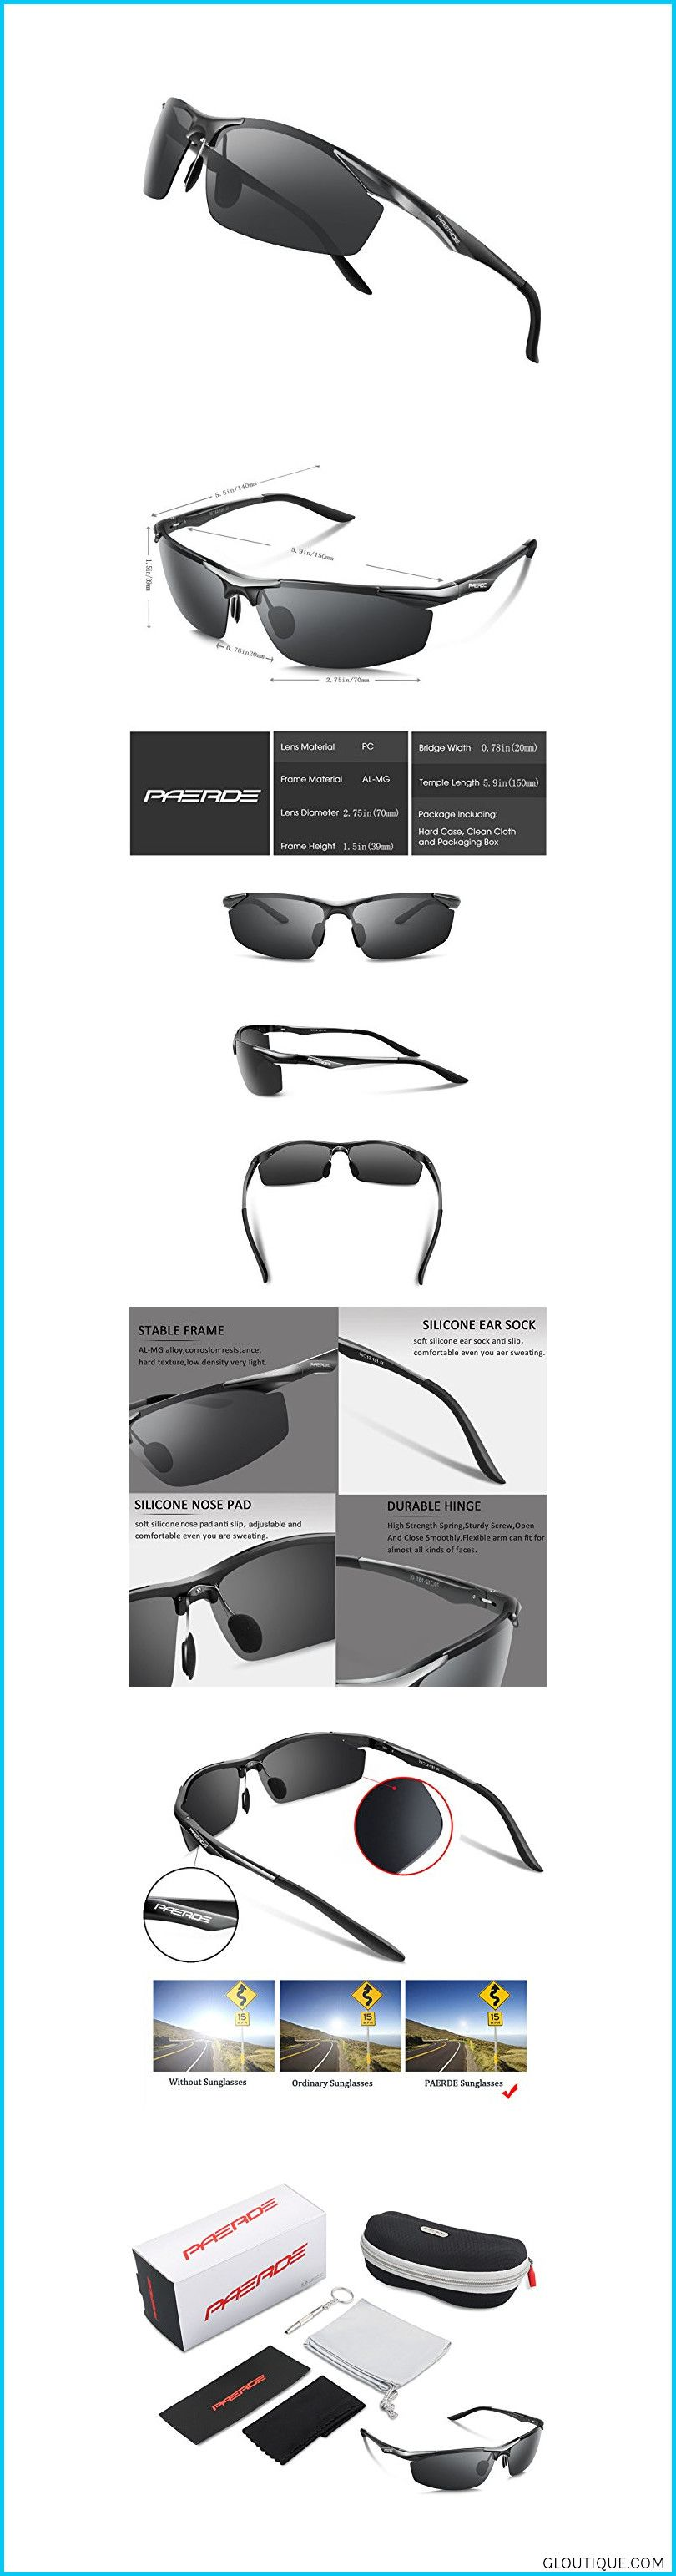 8e94134df08 Polarized sunglasses reduce glare reflected off of roads women PAERDE Men s  Sports Style Polarized Sunglasses for Men Driving Fishing Cycling ...